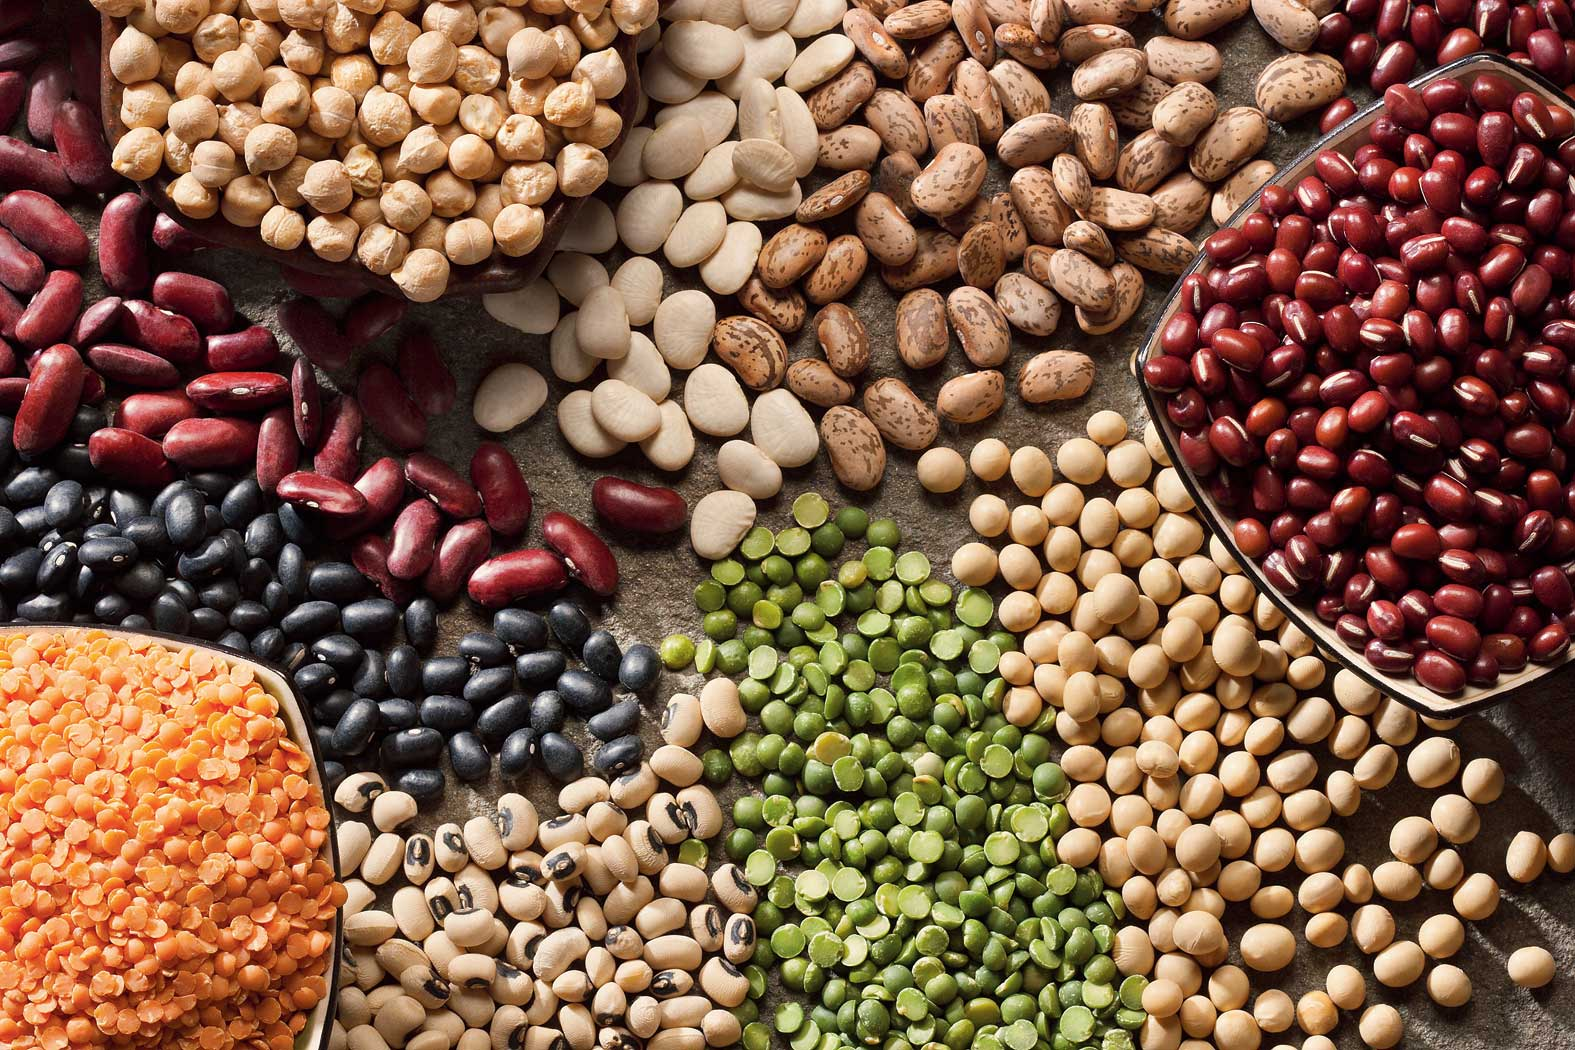 Lentils and dry beans